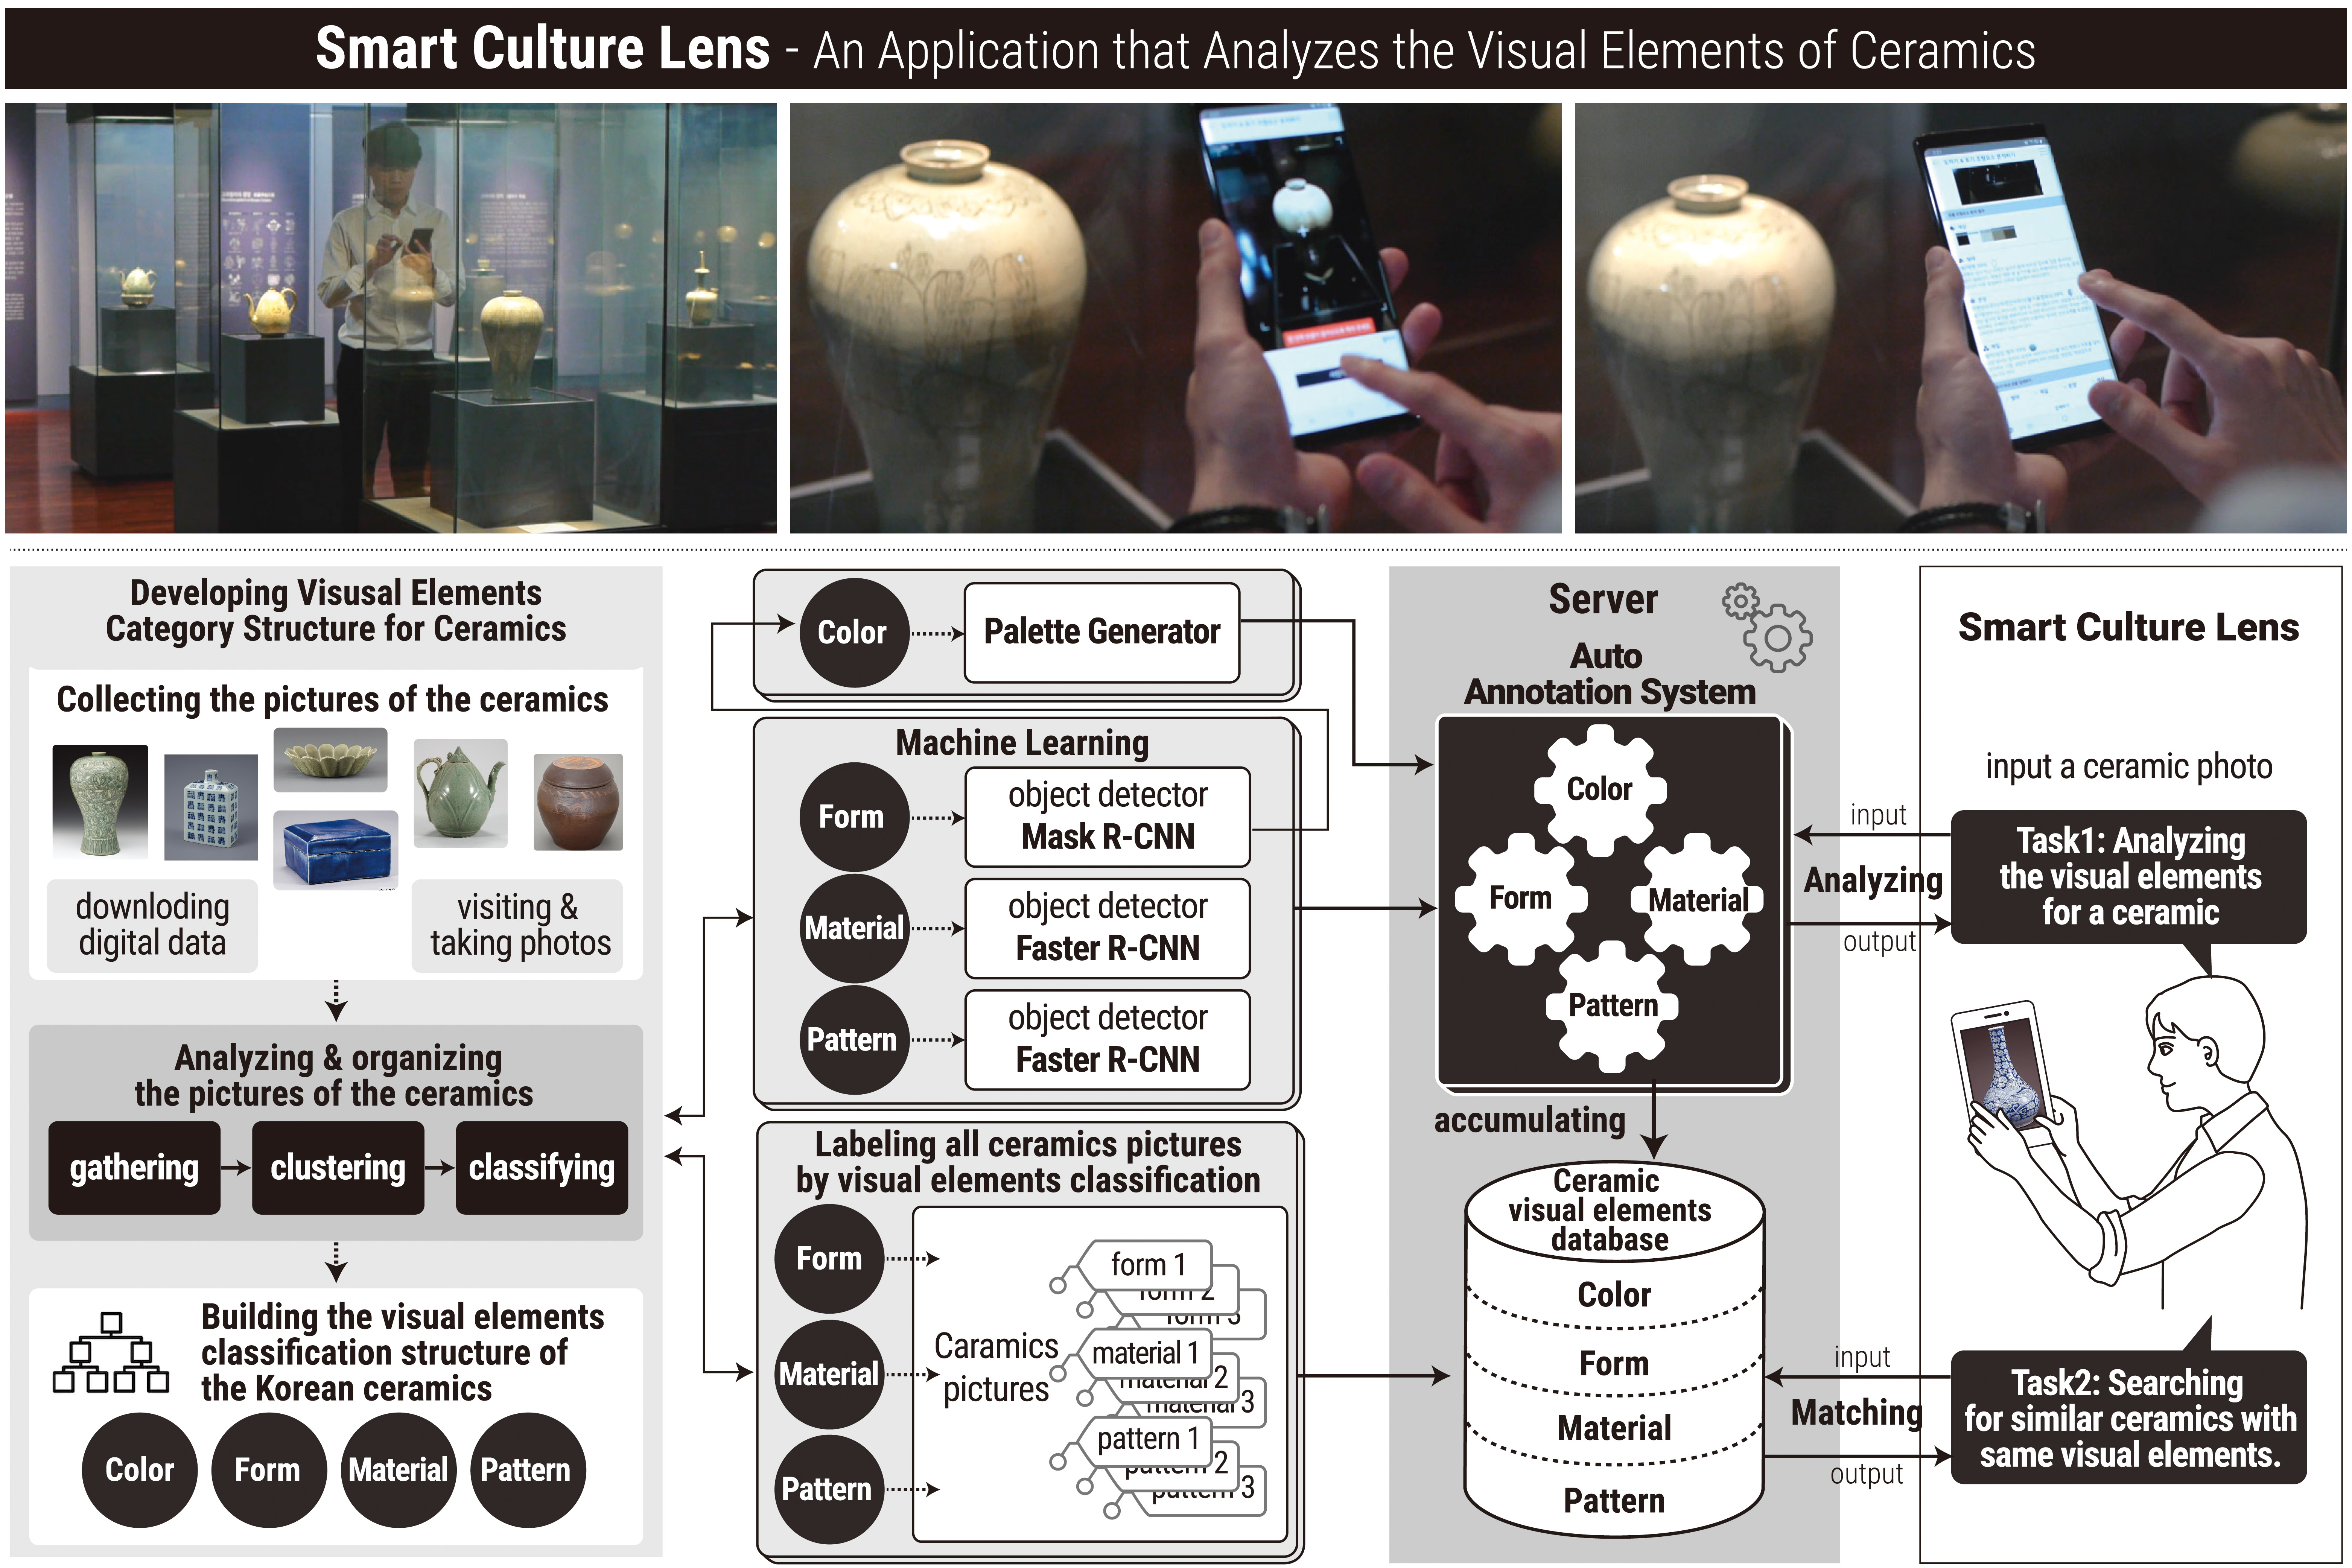 IEEE ACCESS, Smart Culture Lens: An application that analyzes the visual elements of ceramics 이미지